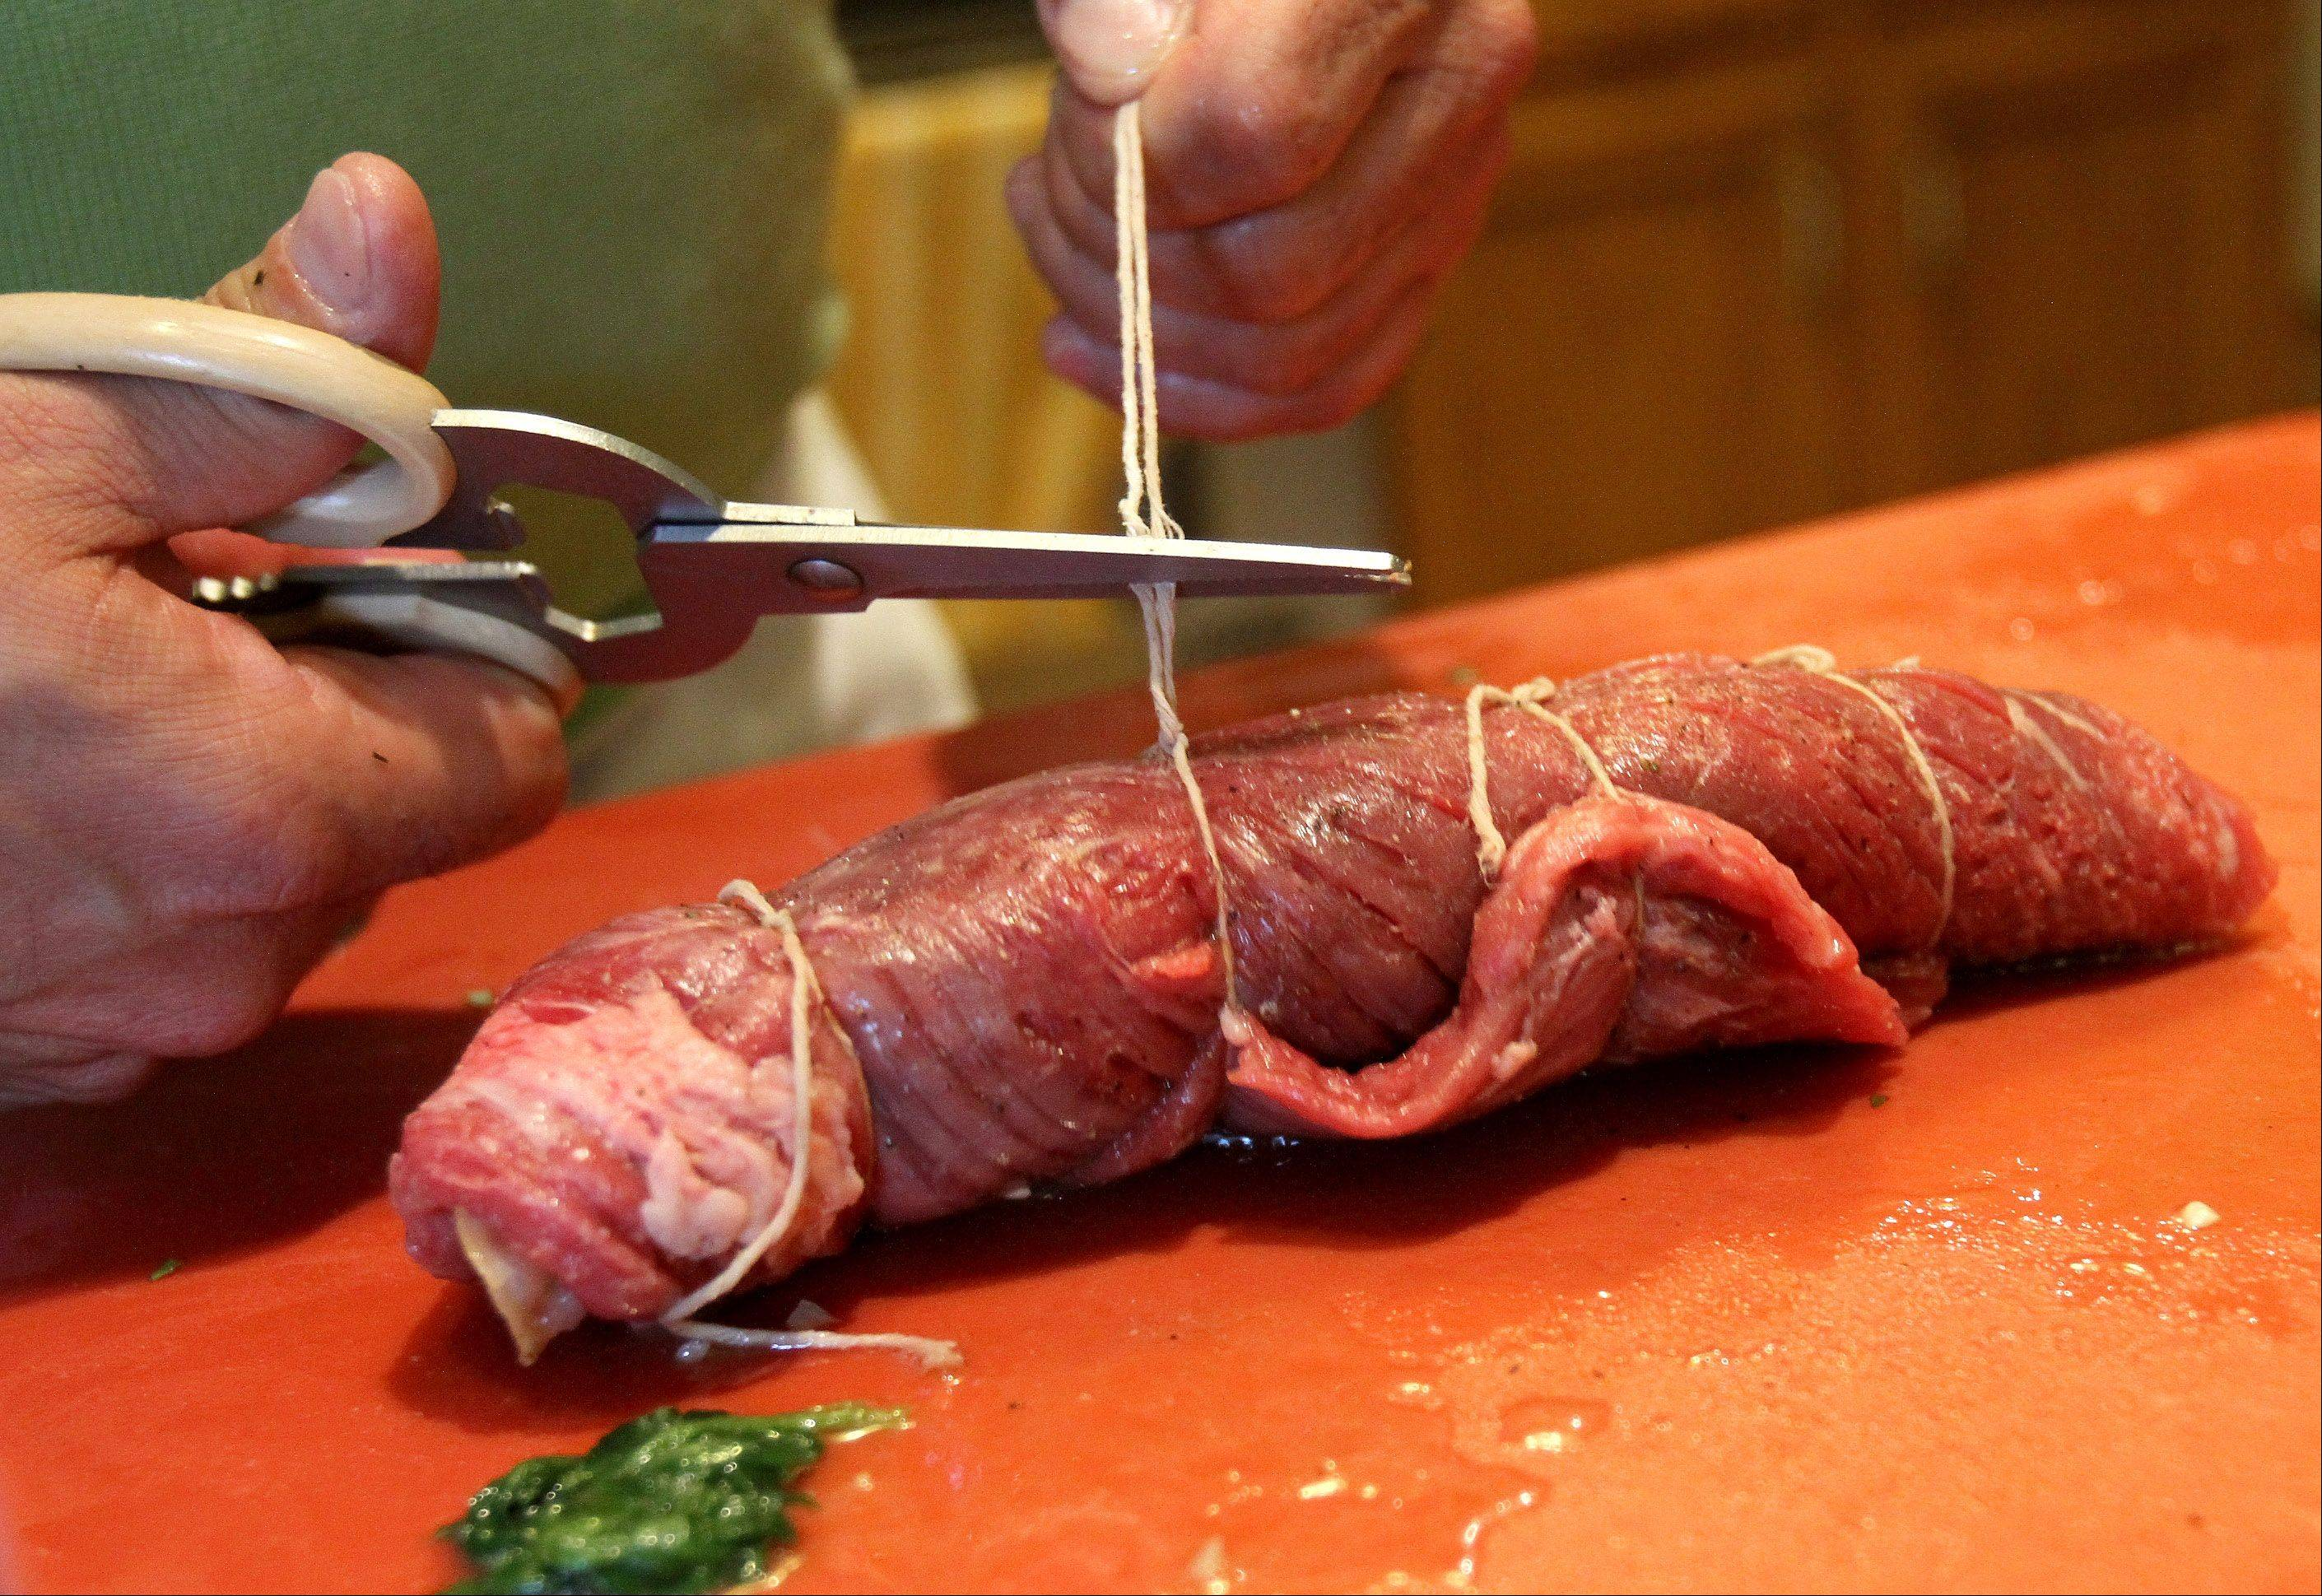 Tony Barone rolls spinach and provolone cheese into his braciole.